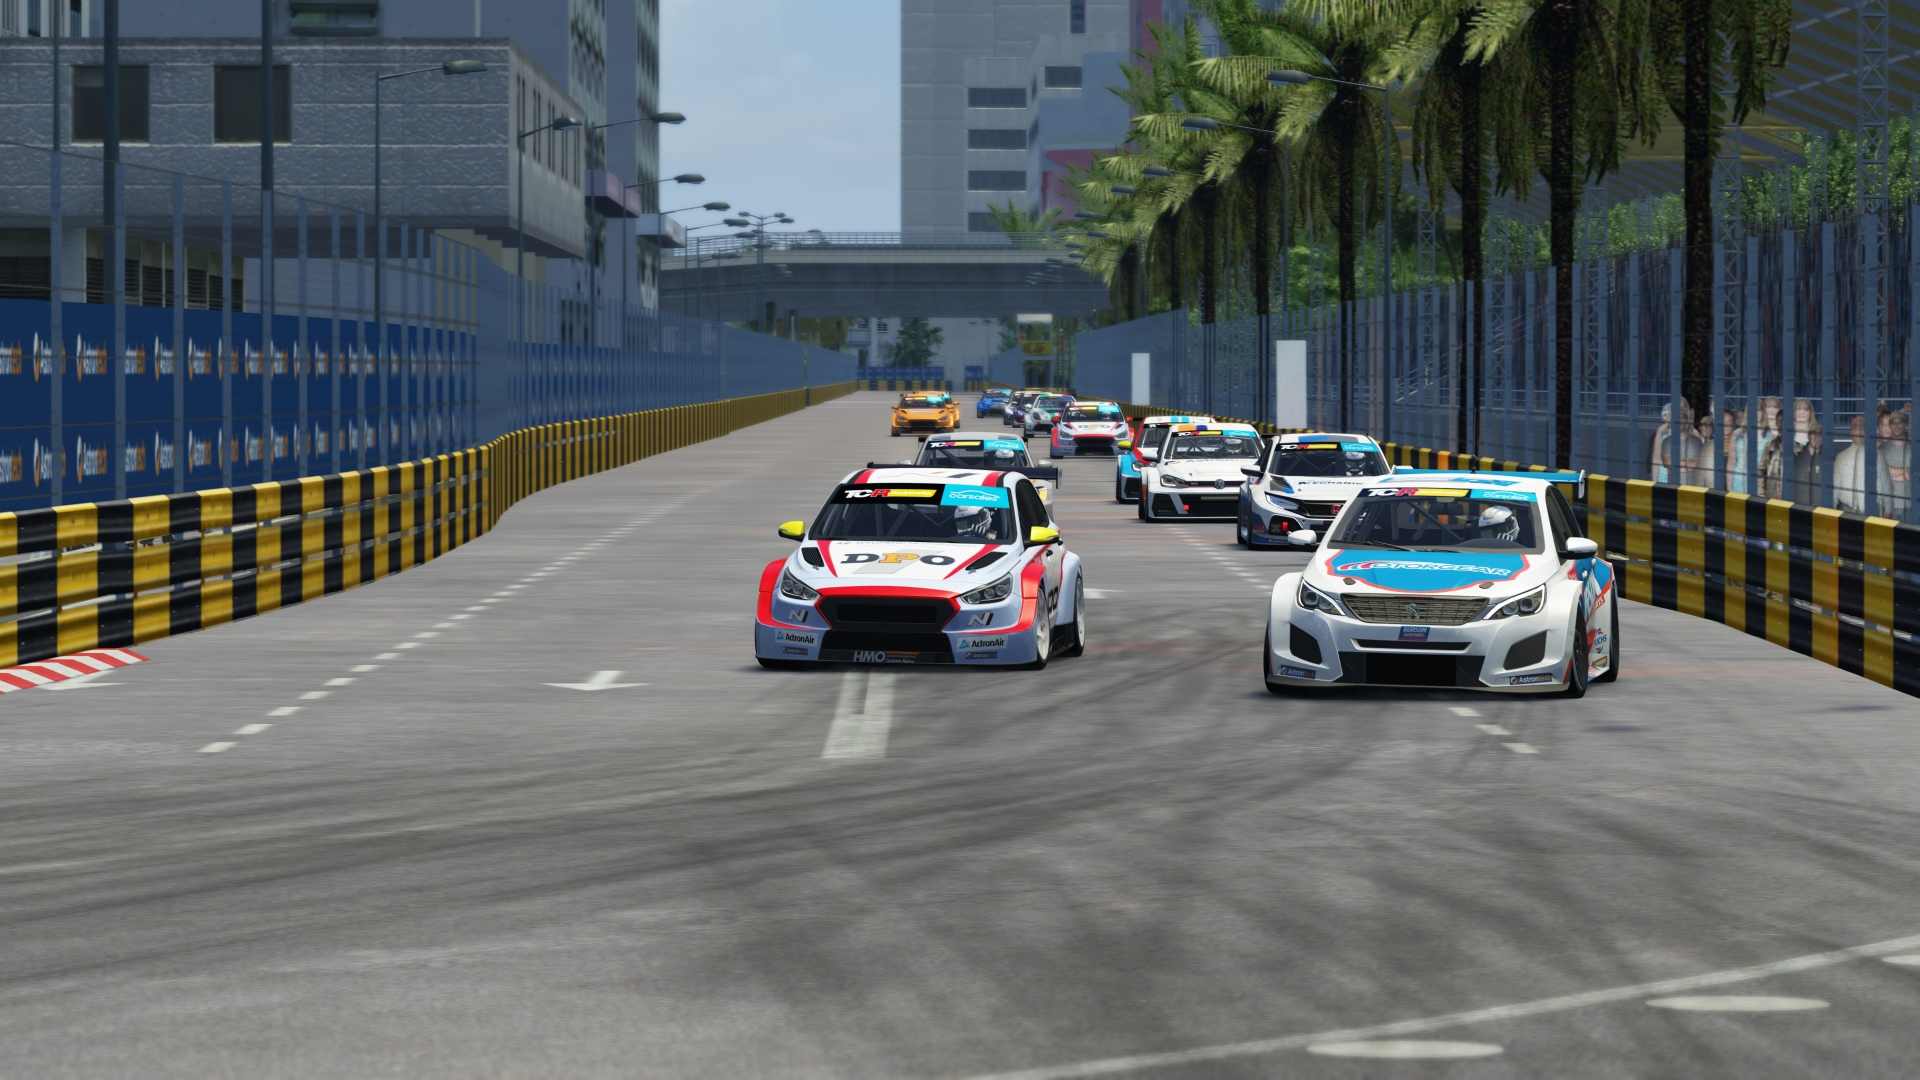 MACAU BATTLE TO DECIDE CARSALES TCR AUSTRALIA SIMRACING SERIES